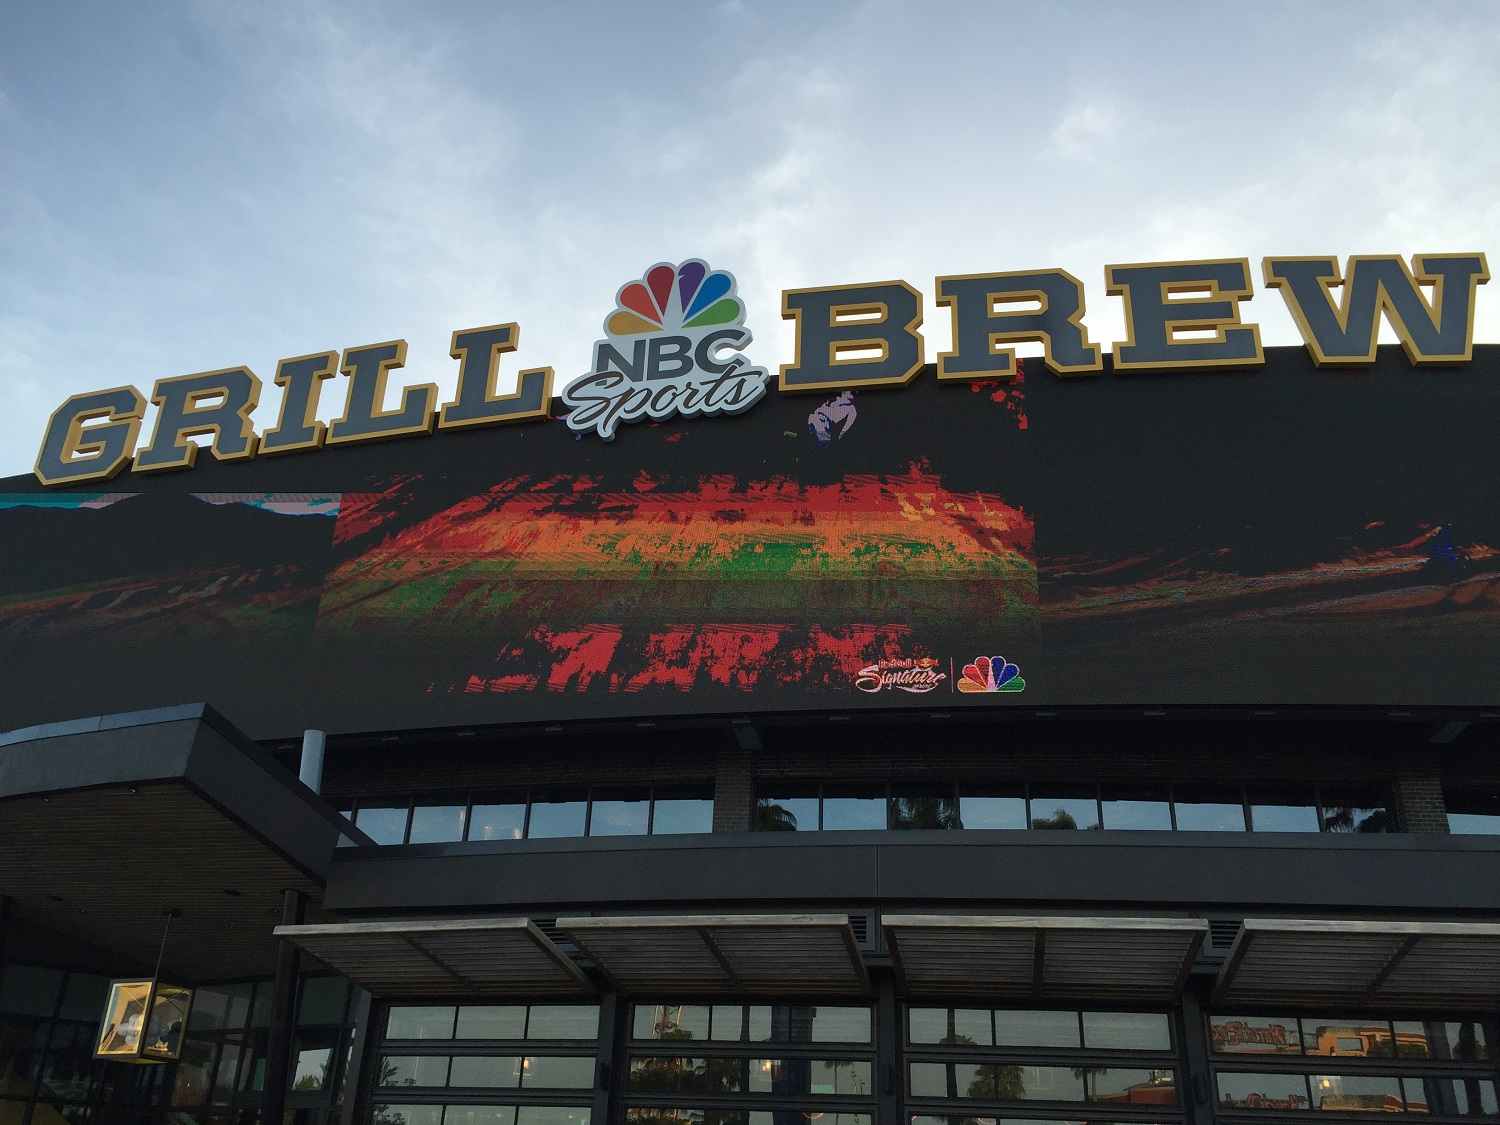 Giant Exterior Video Screen at NBC Sports Grill & Brew